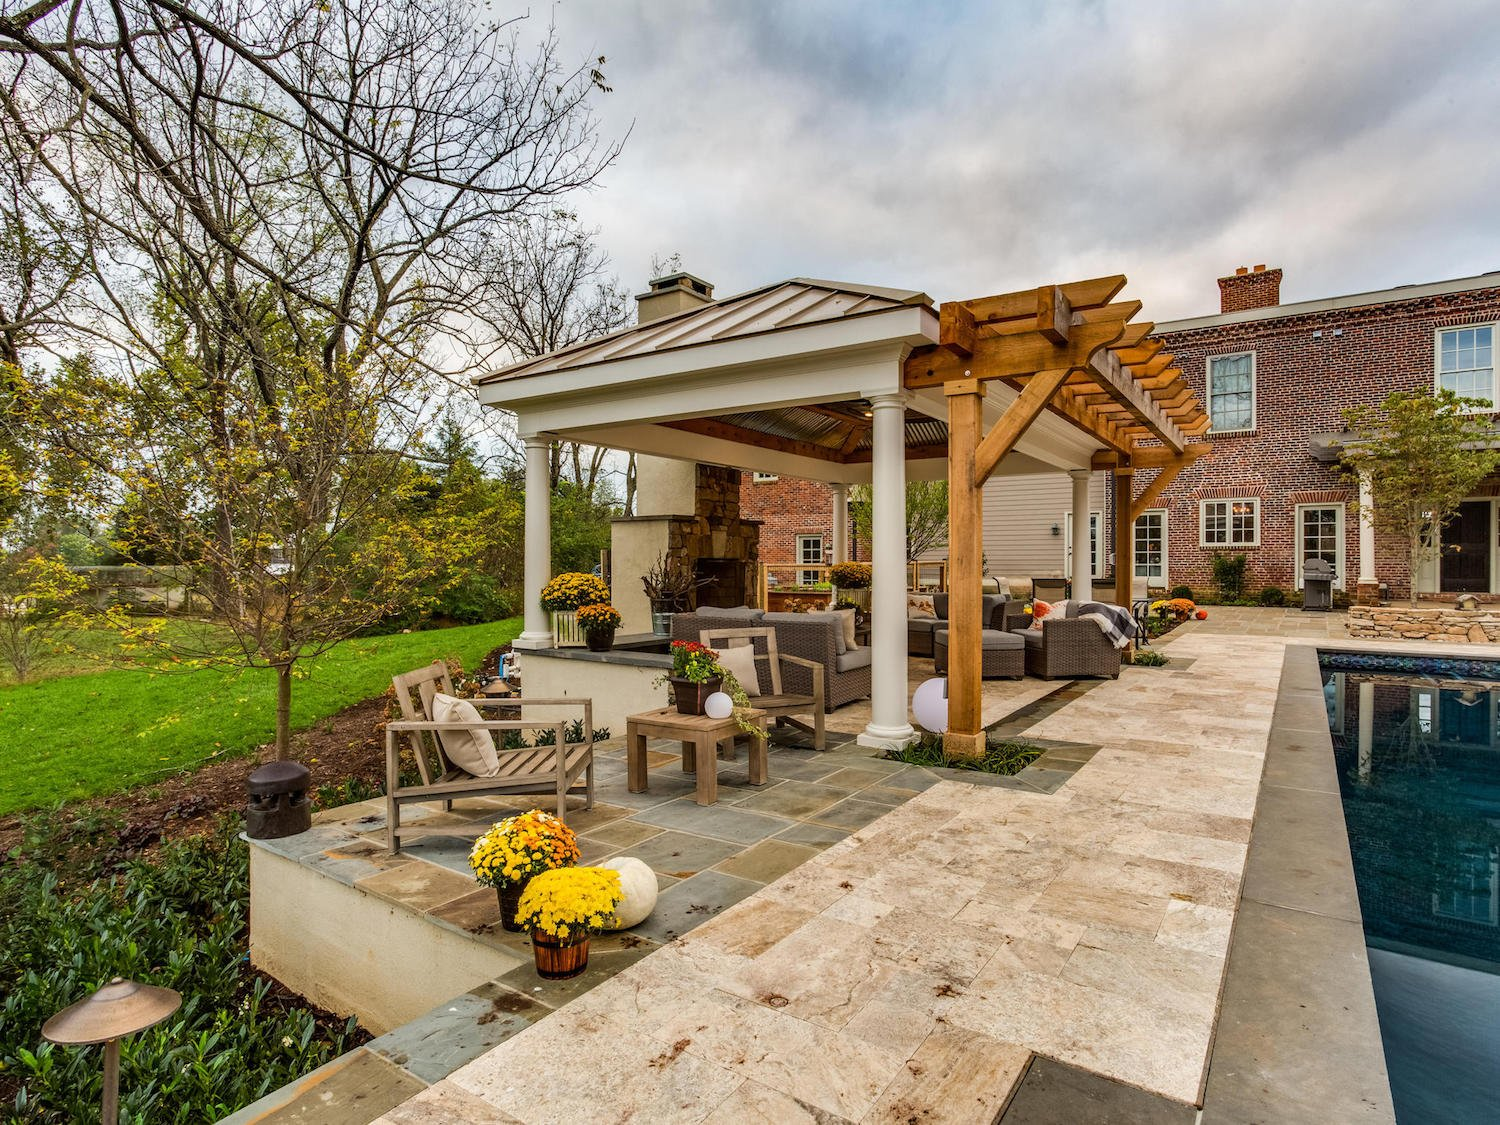 landscape design in Warrenton, VA with outdoor fireplace, pavilion, pool, and flagstone